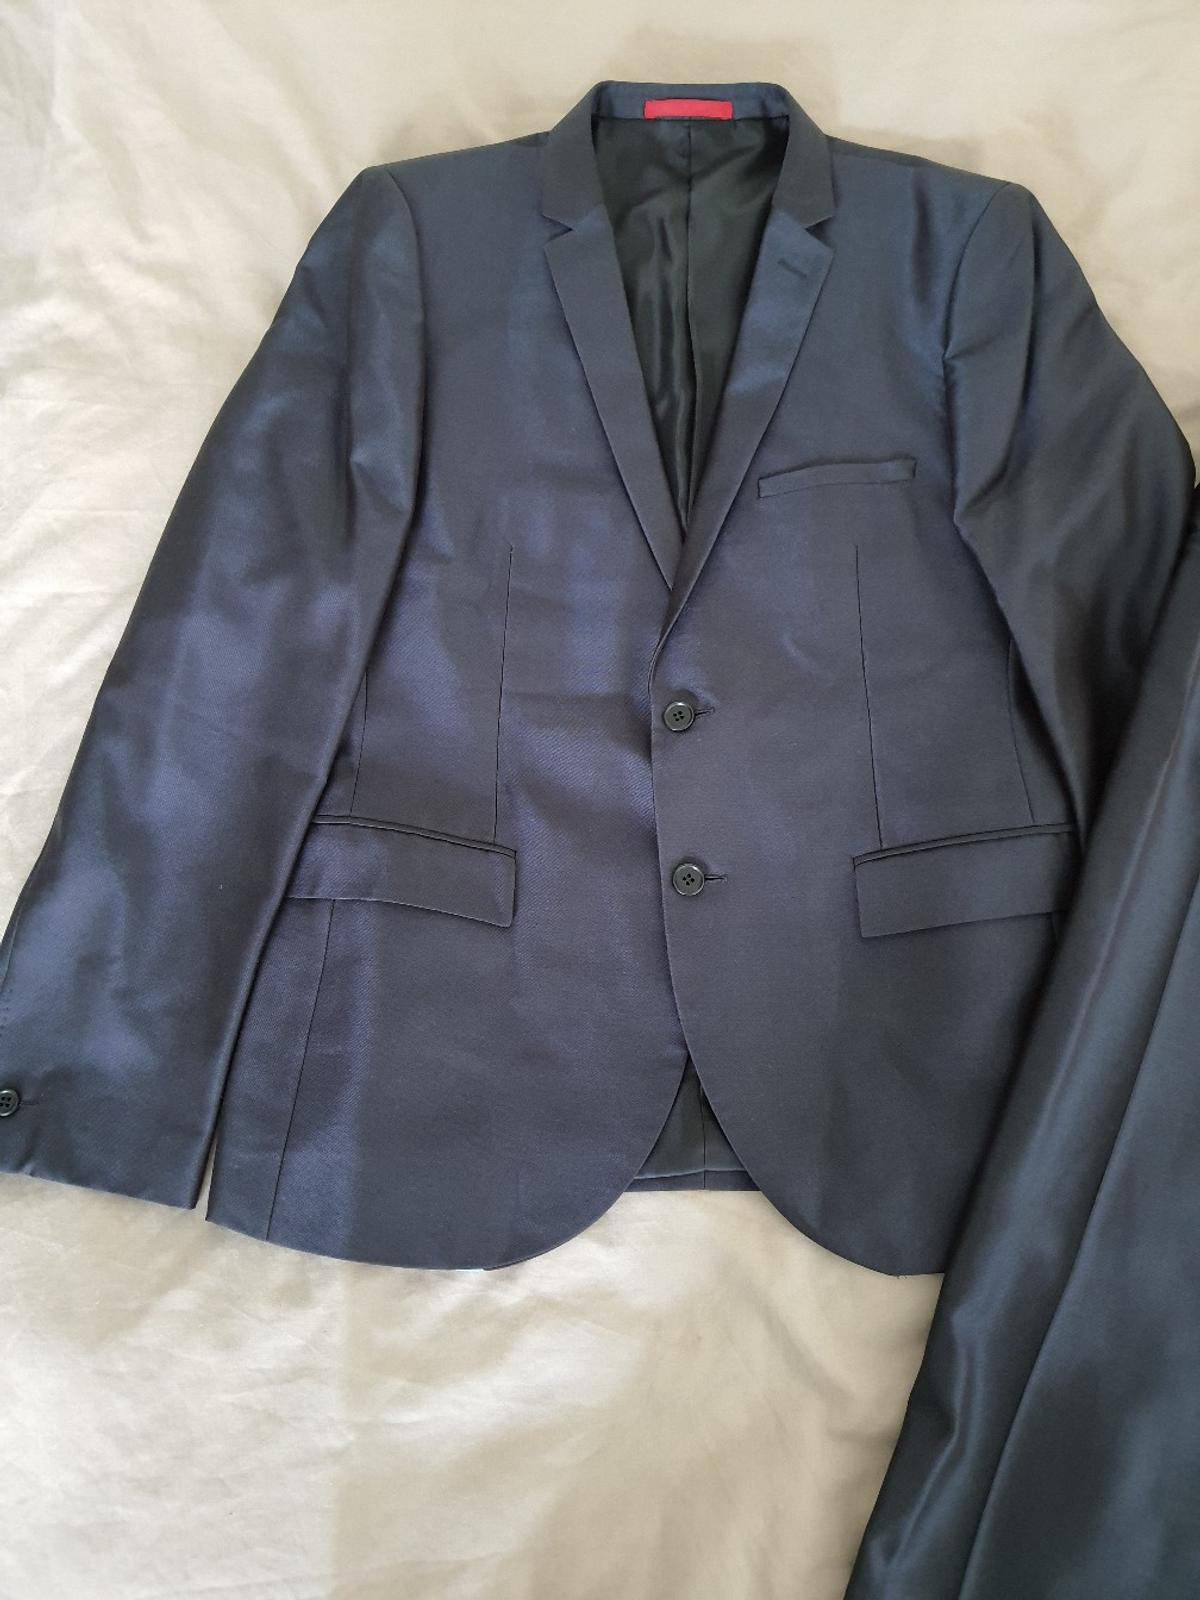 A regular fit navy blue suit for men. Item has only been worn once.  Condition Like New - No Tags - Regular Fit.  Blazer: UK Chest Size 42R / Trousers: UK Size 36R.